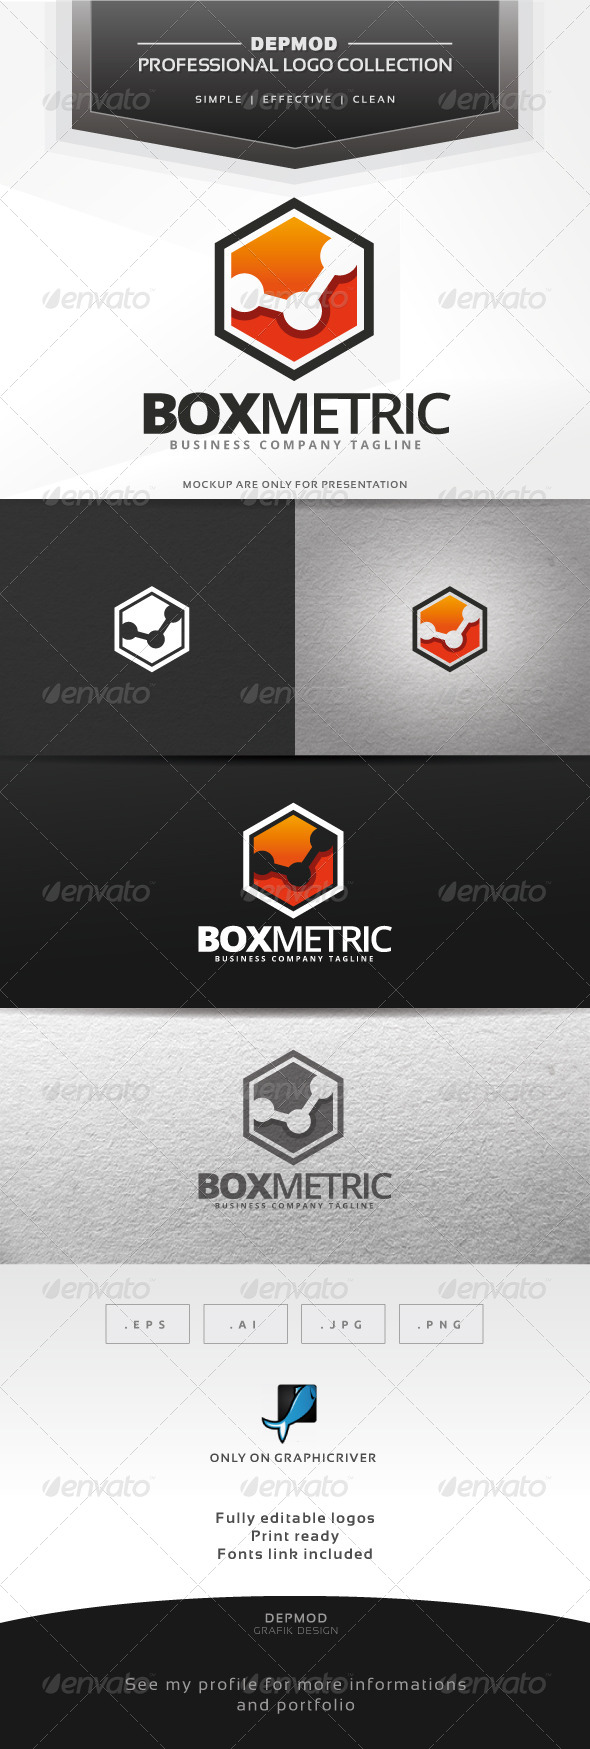 GraphicRiver Box Metric Logo 6965003